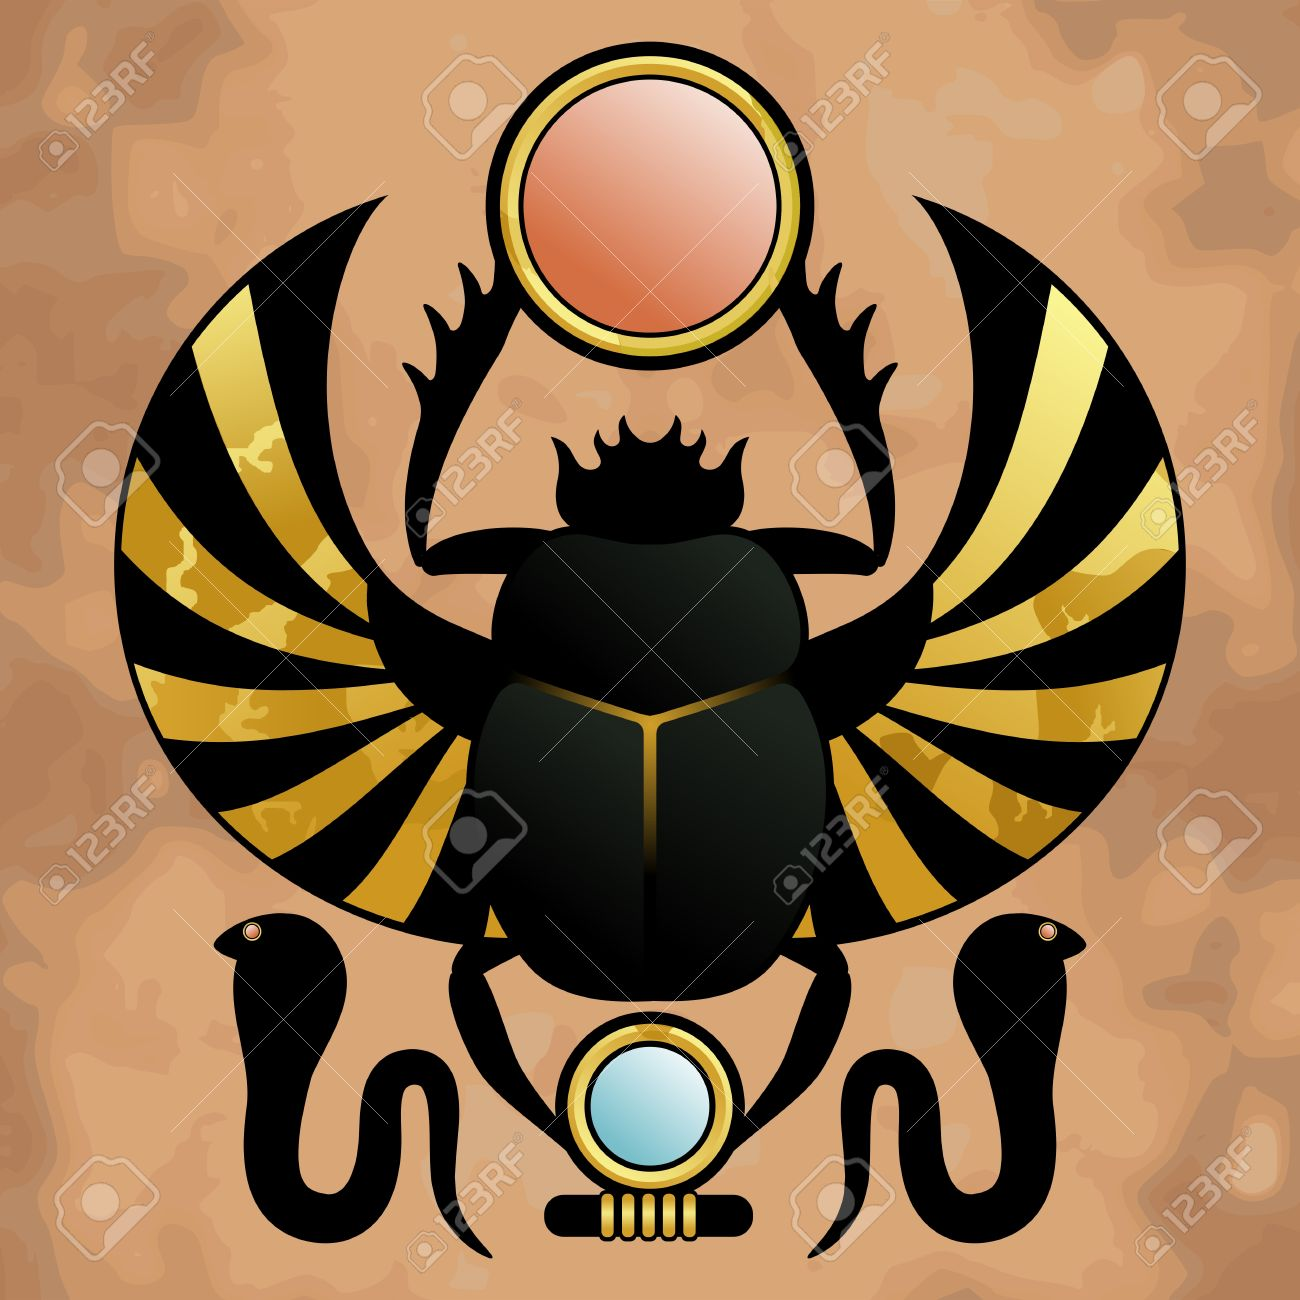 24233730-religion-of-ancient-egypt-scarab-in-ancient-egypt-the-symbol-of-the-god-khepera